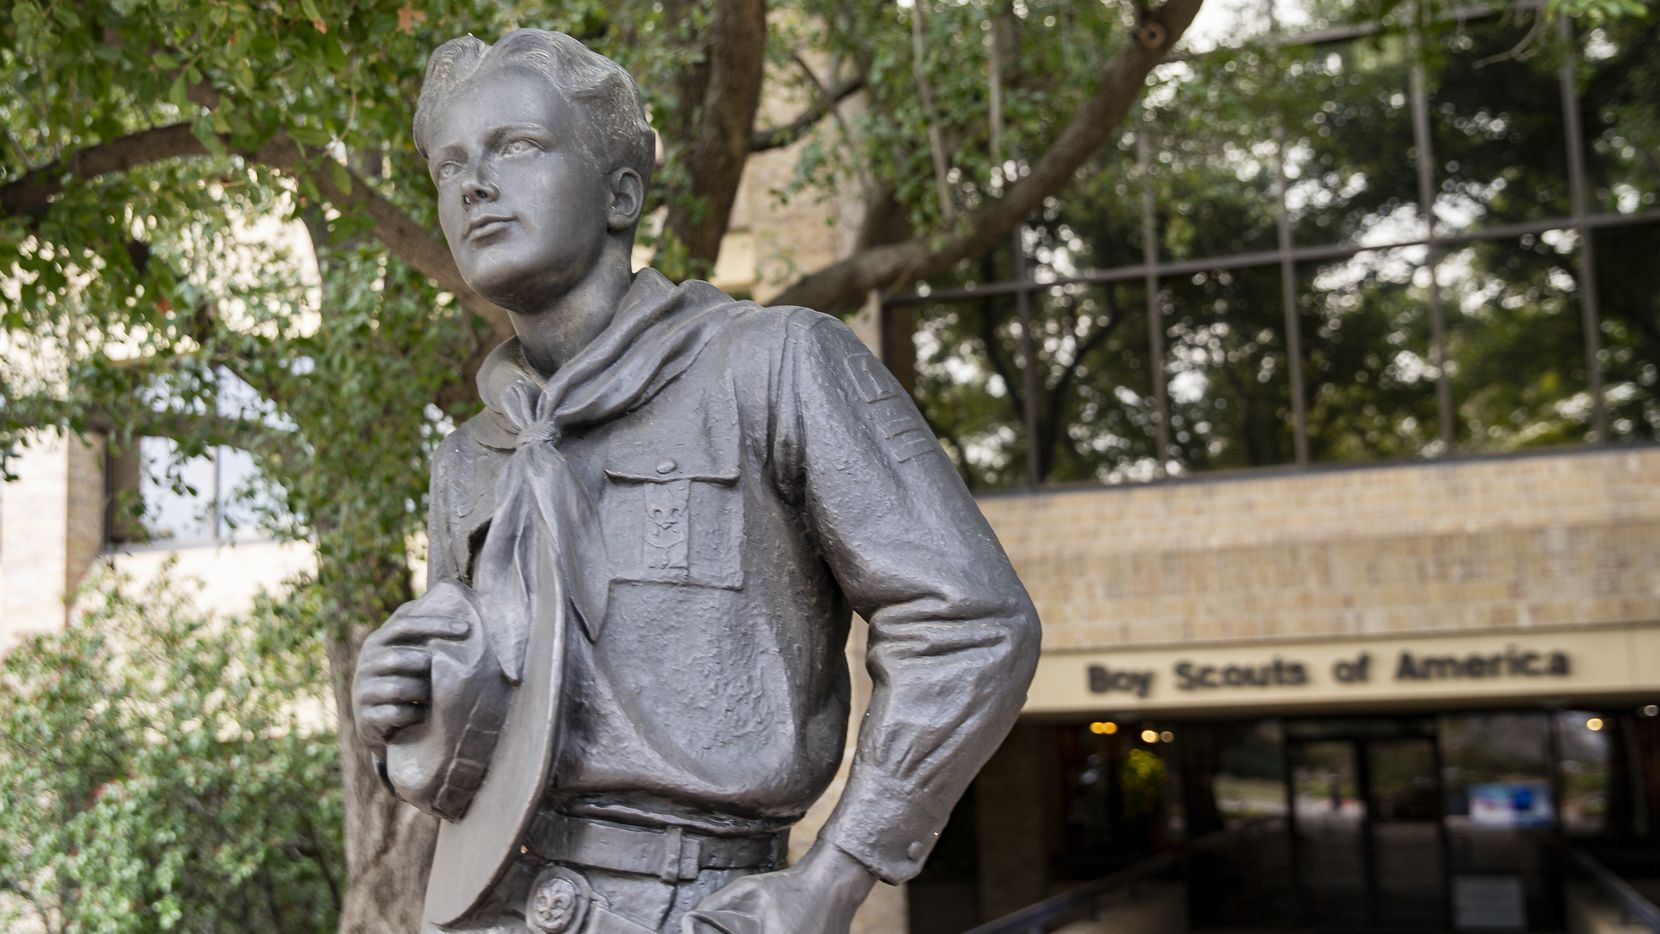 The Boy Scout statue outside of the Boy Scouts of America headquarters in Irving.